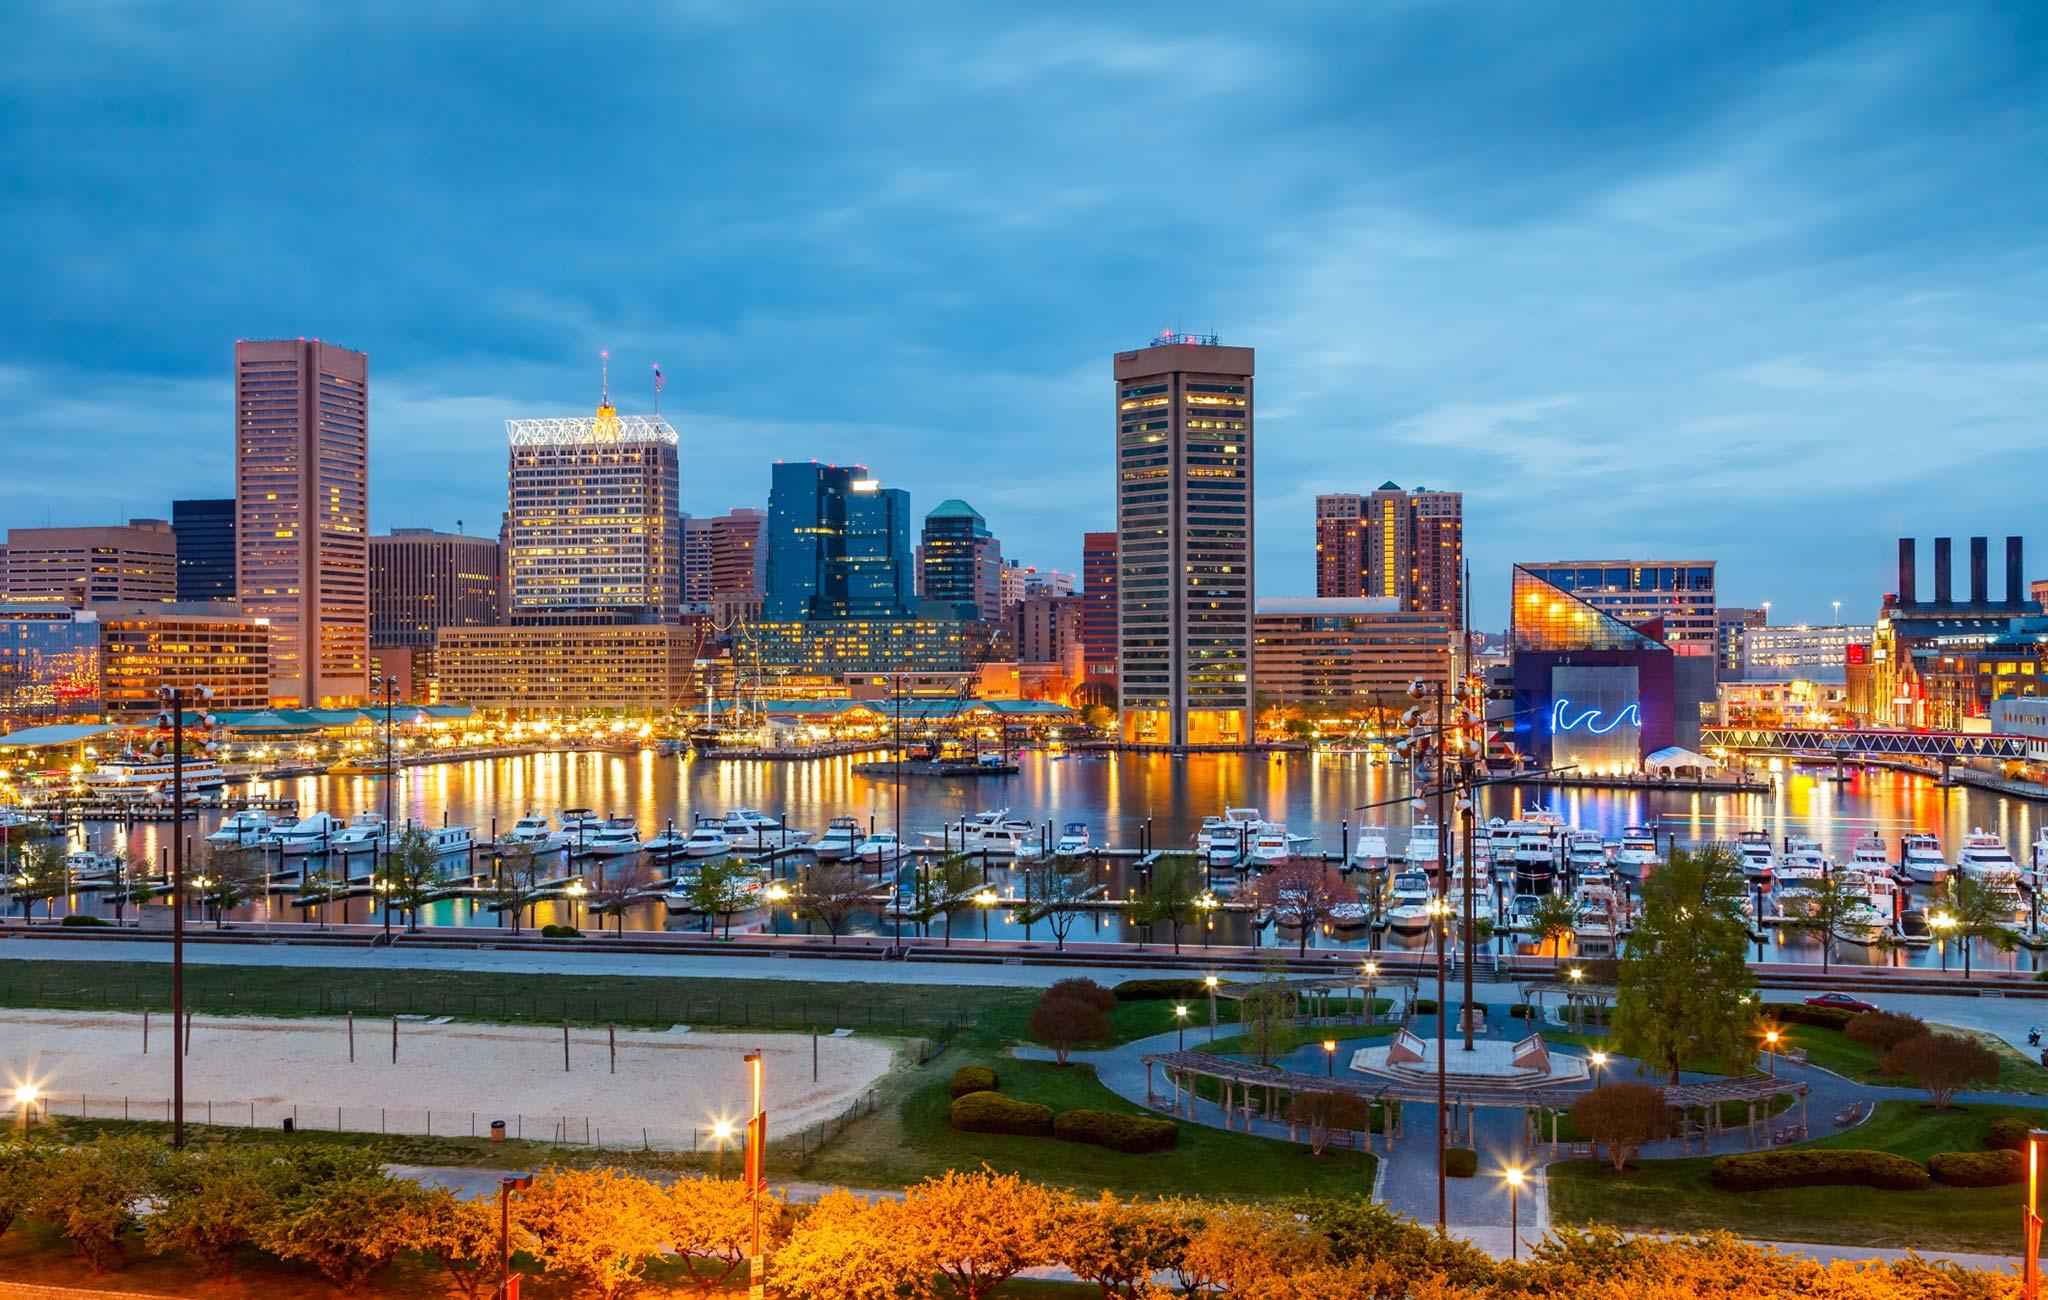 Baltimore is a city of pulse-pounding excitement and cultural diversity. You'll never be bored when you relocate to Charm City.